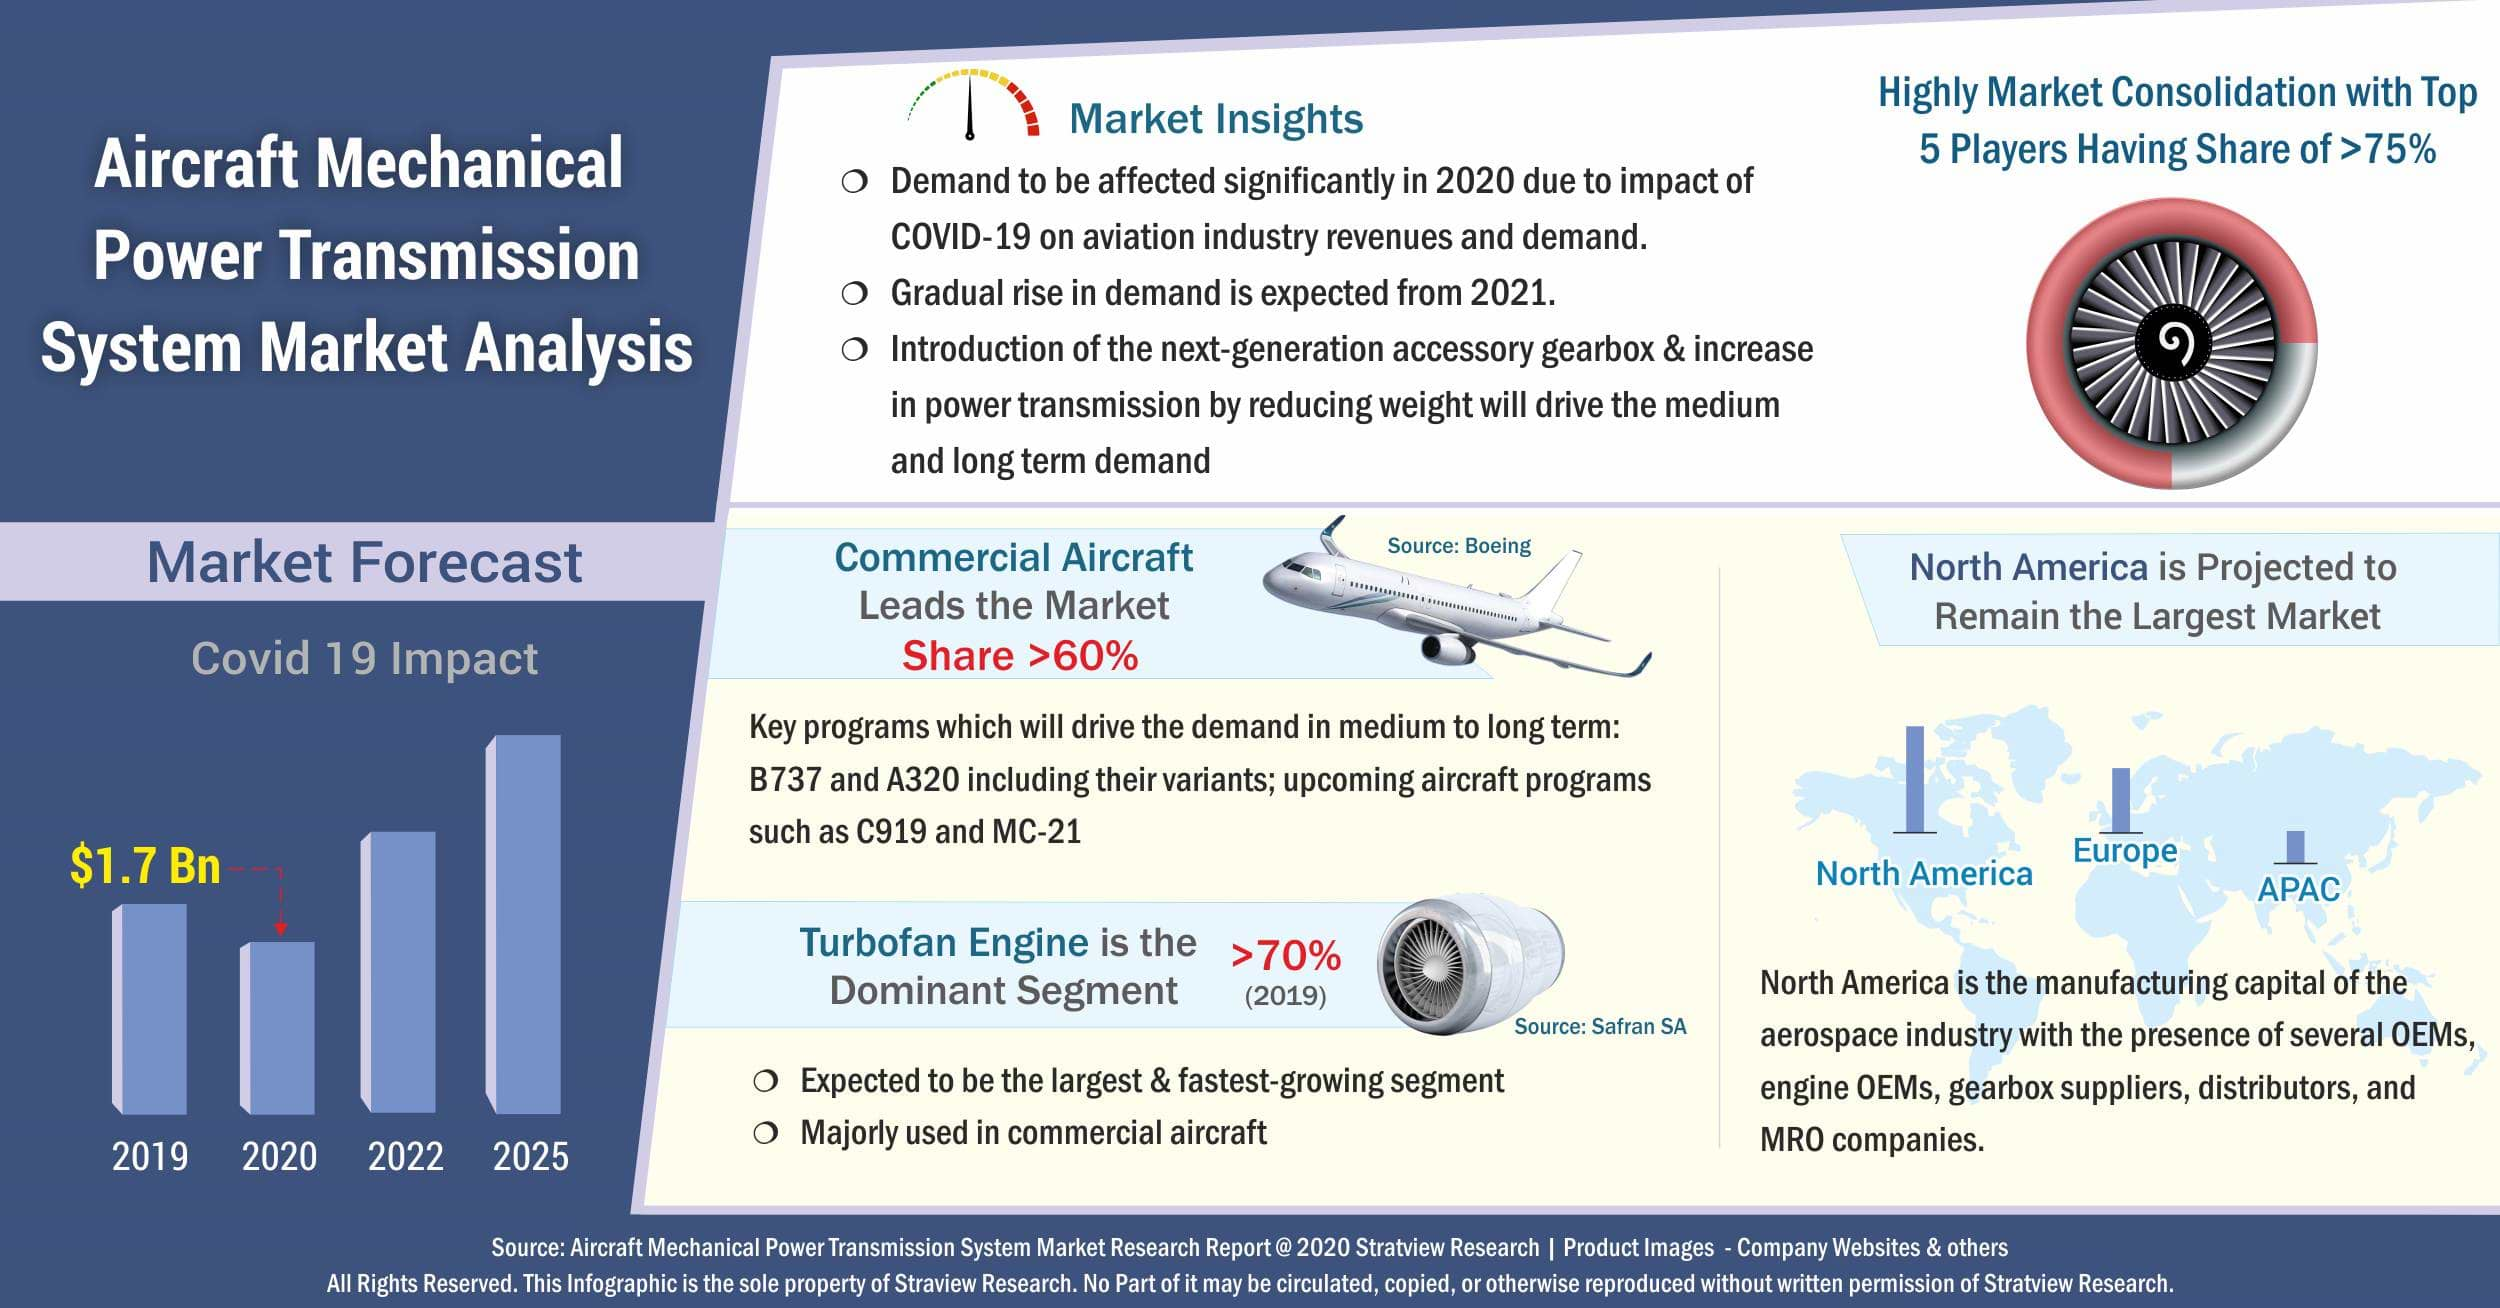 Aircraft Mechanical Power Transmission System Market